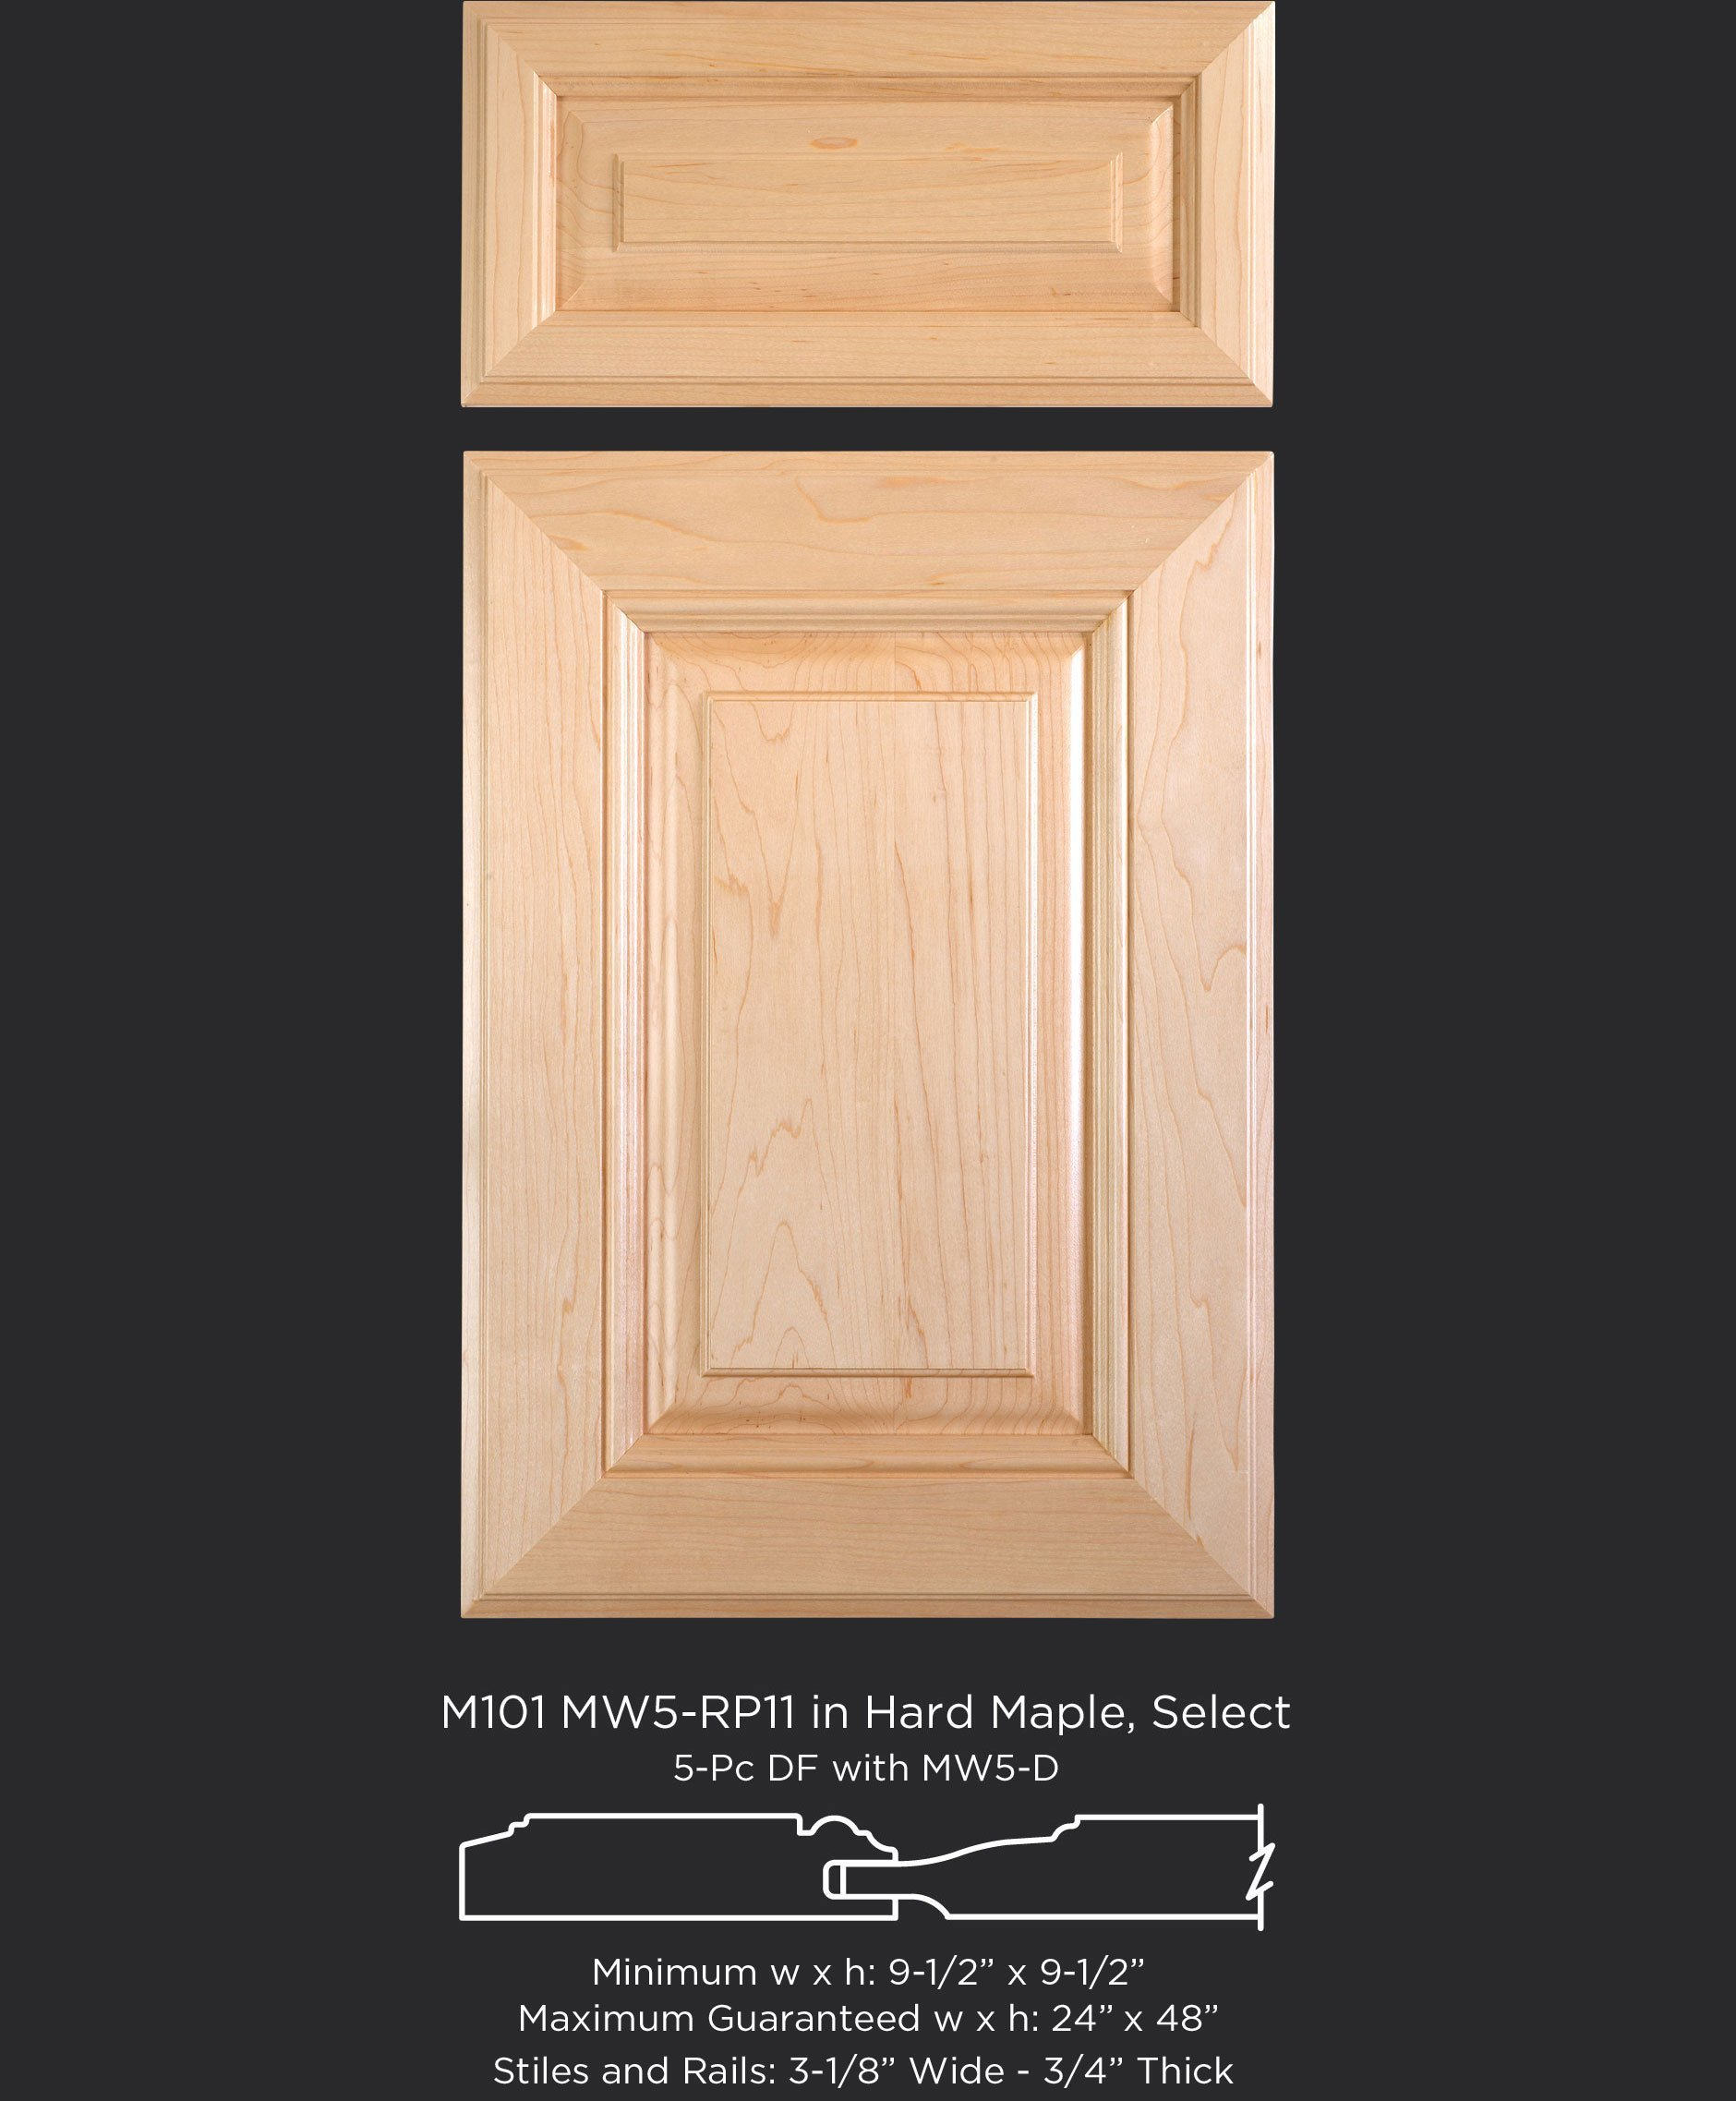 2275 #A35D28 Cabinet Remodeling San Antonio TX Door Options Custom Cabinets picture/photo Entry Doors San Antonio 38991880